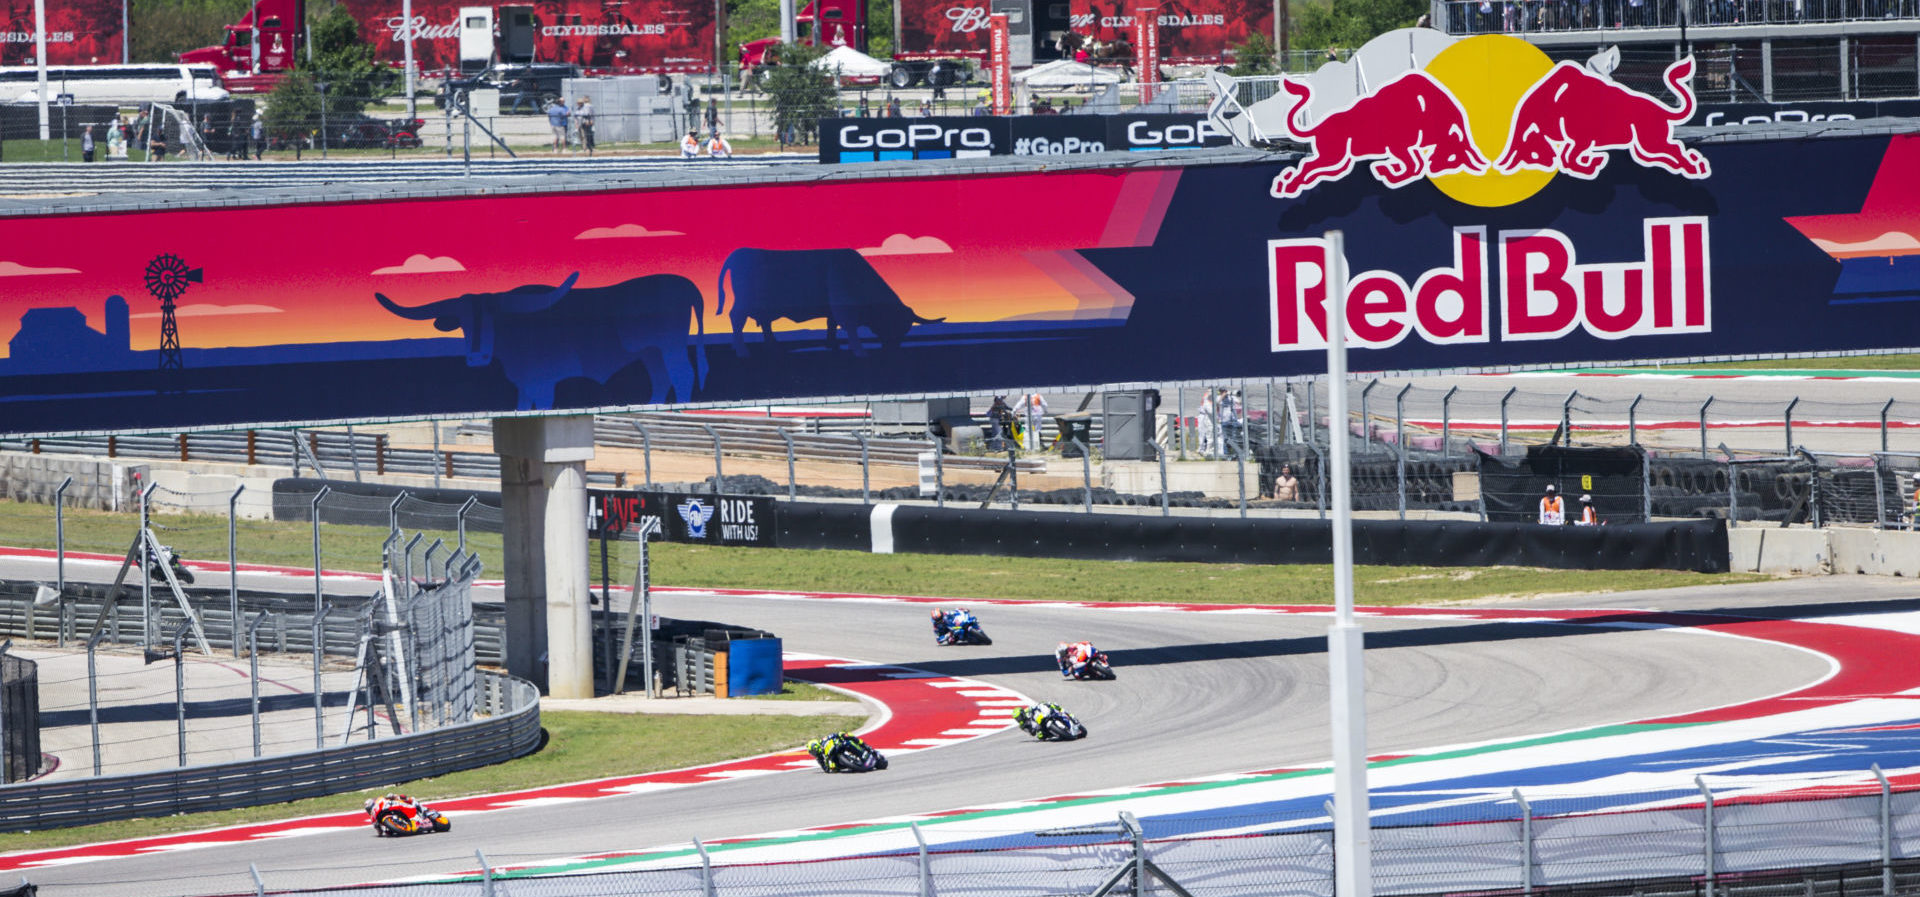 Action from the 2019 Red Bull Grand Prix of The Americas at Circuit of The Americas. Photo courtesy Red Bull.